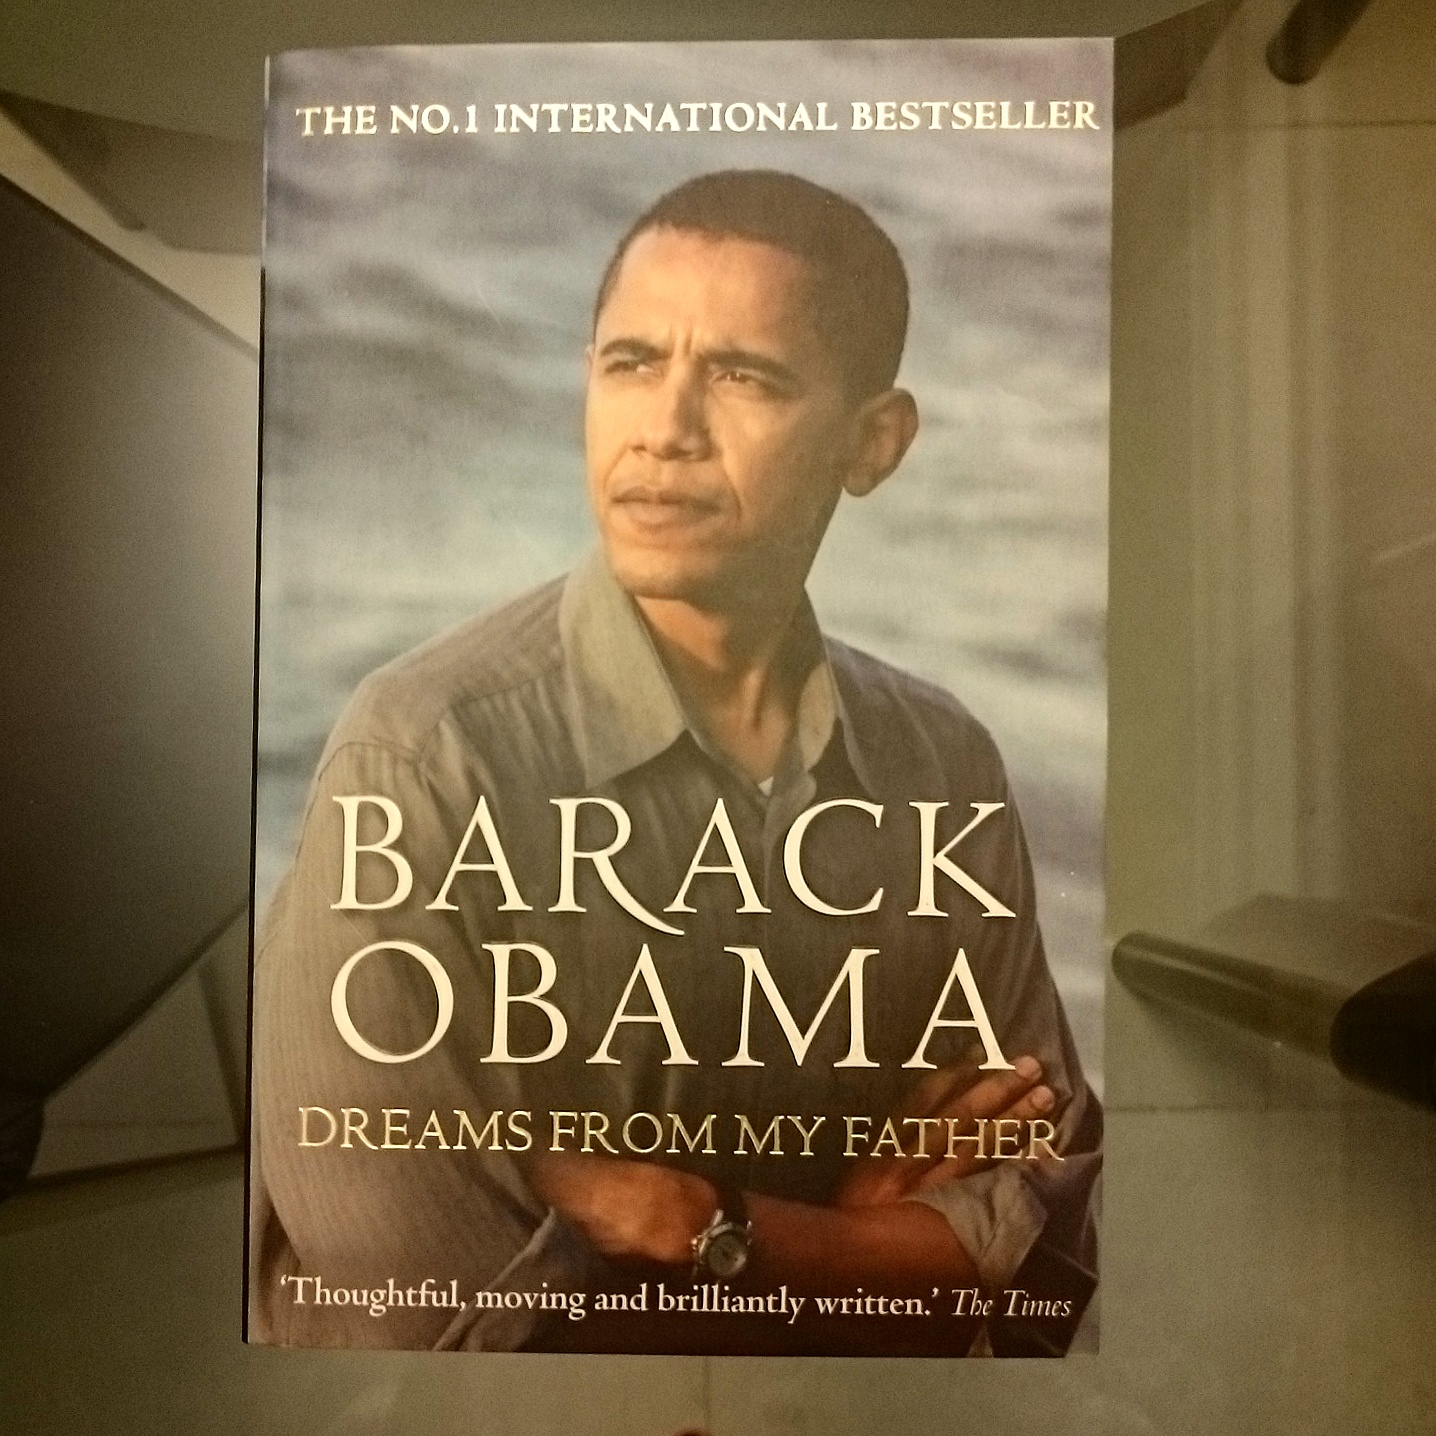 Barack Obama - Dreams from My Father image